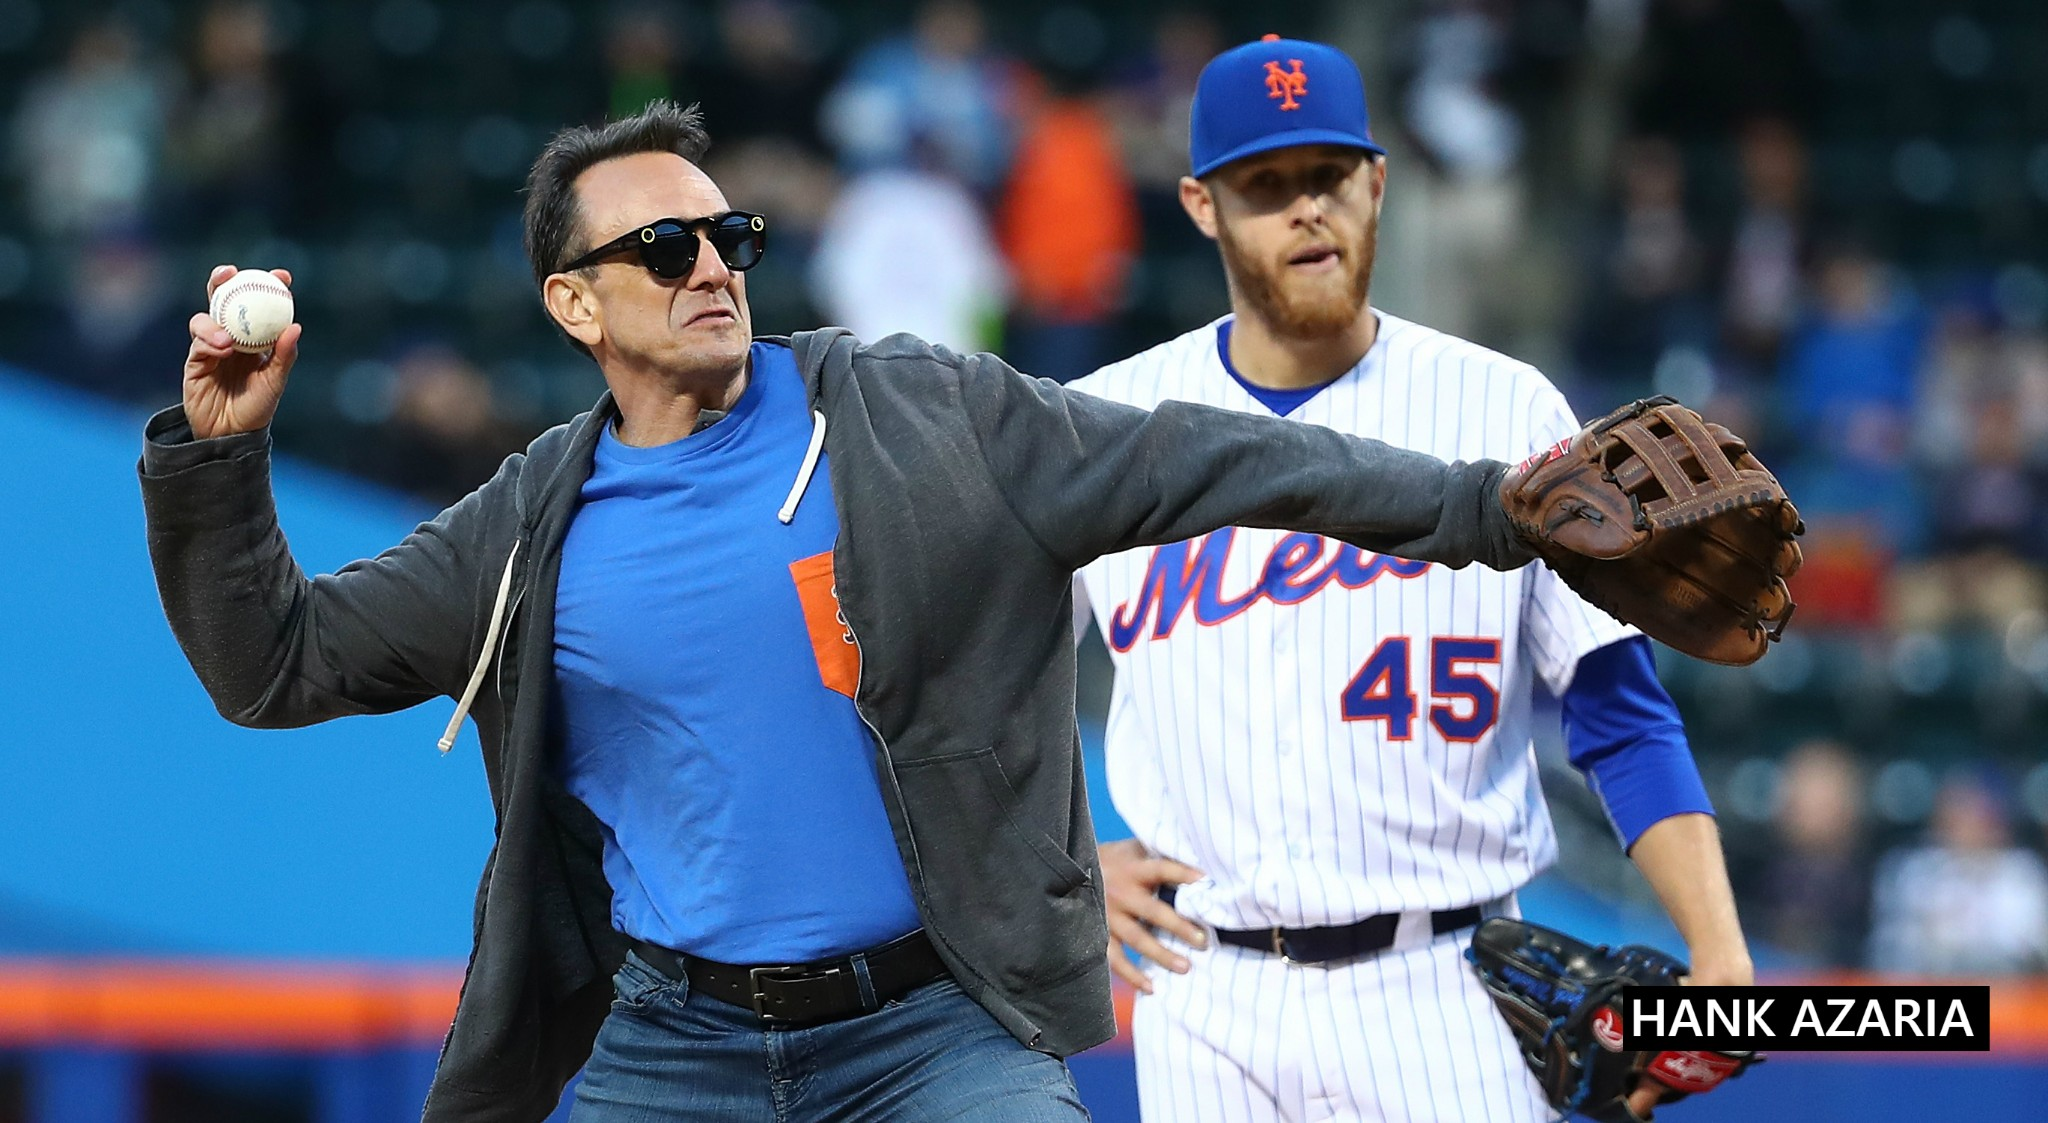 Hank Azaria on 'CMB': Mets Are Playing Relevant Games Well